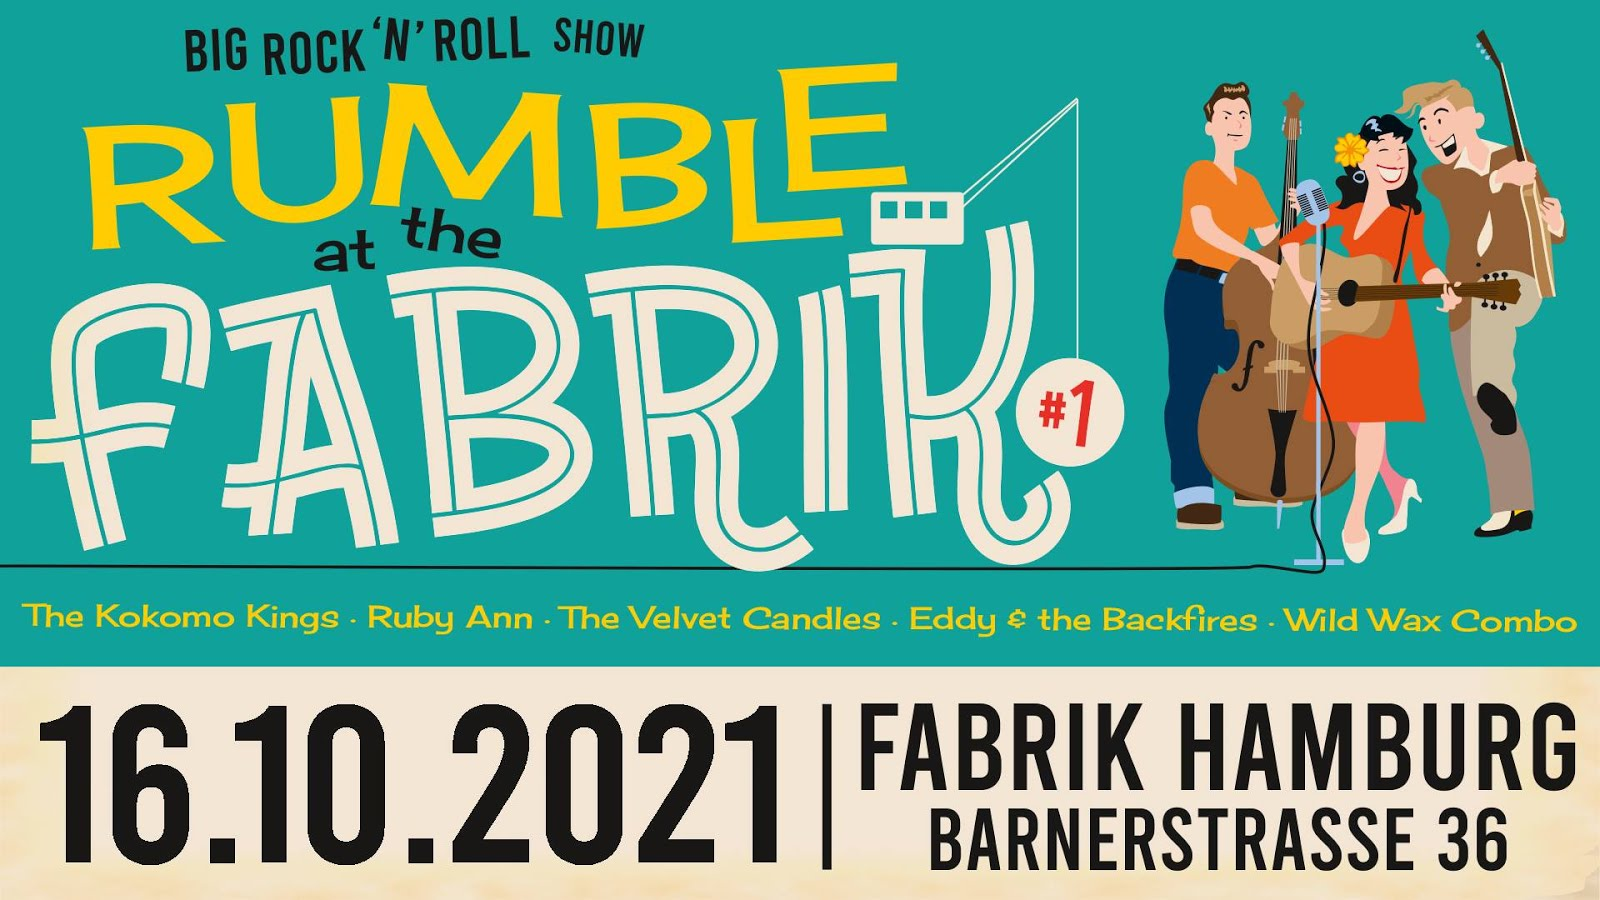 Rumble @ The Fabrik #1